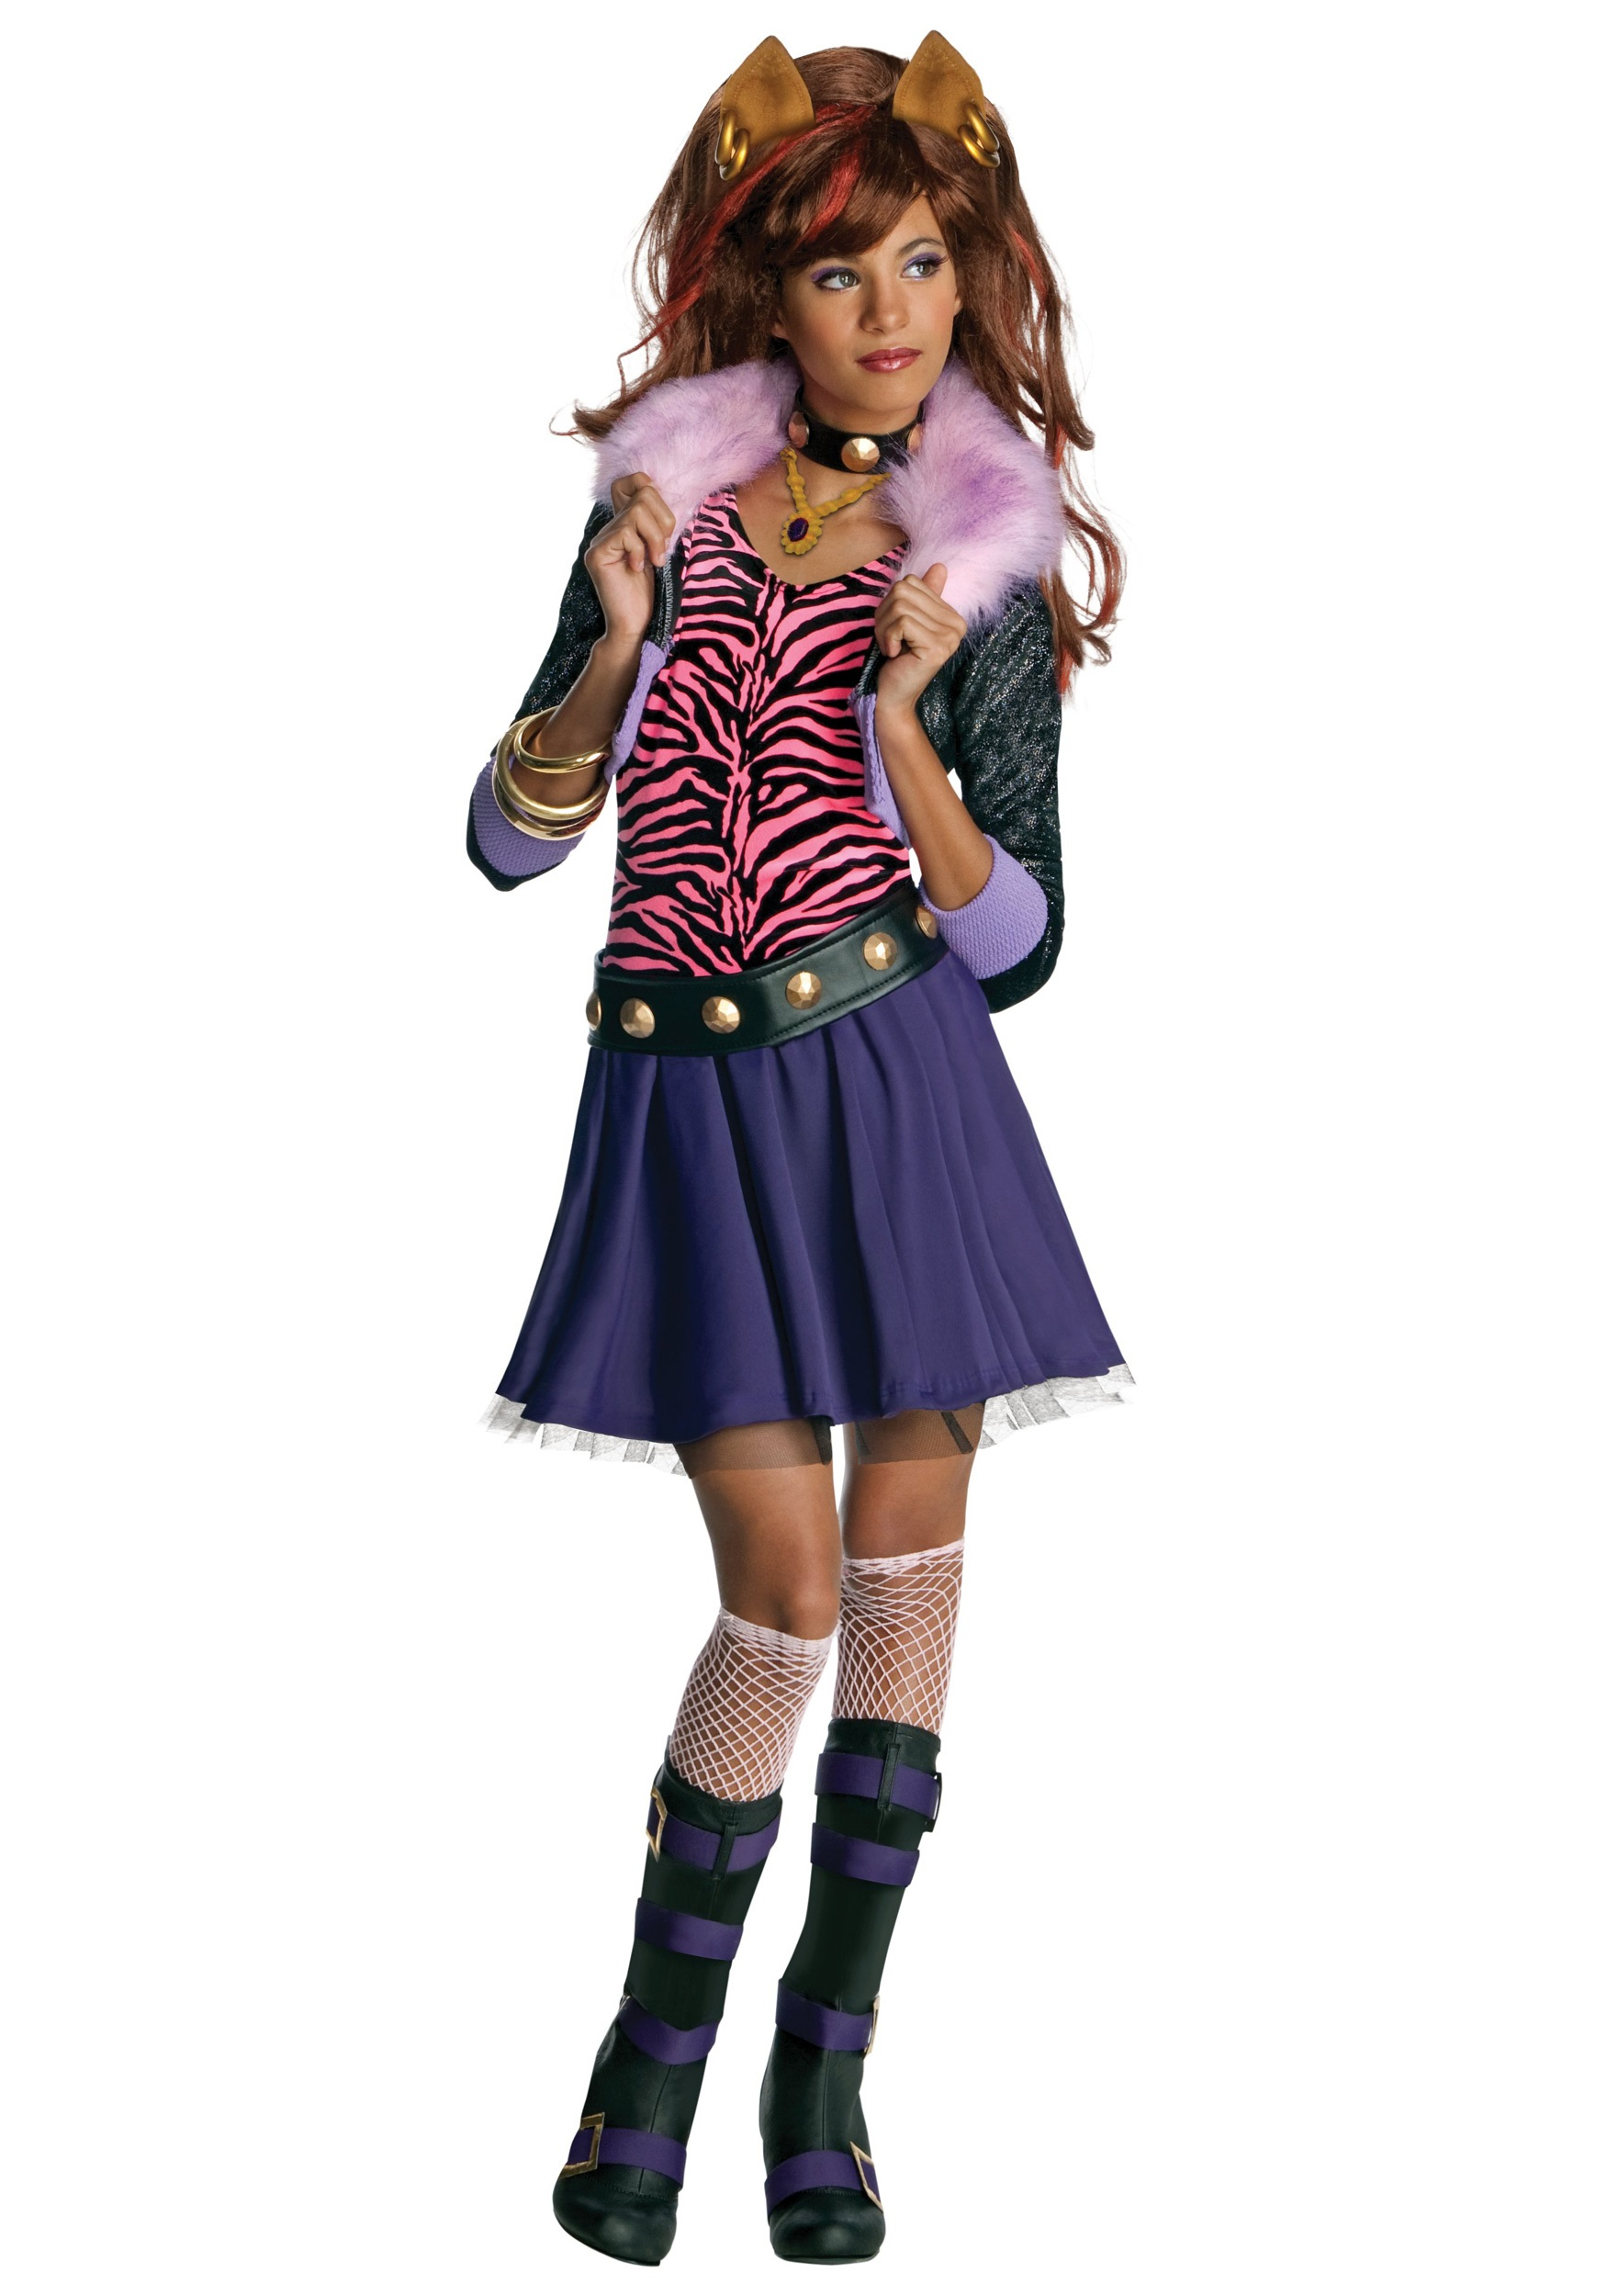 sc 1 st  Halloween Costumes & Clawdeen Wolf Costume